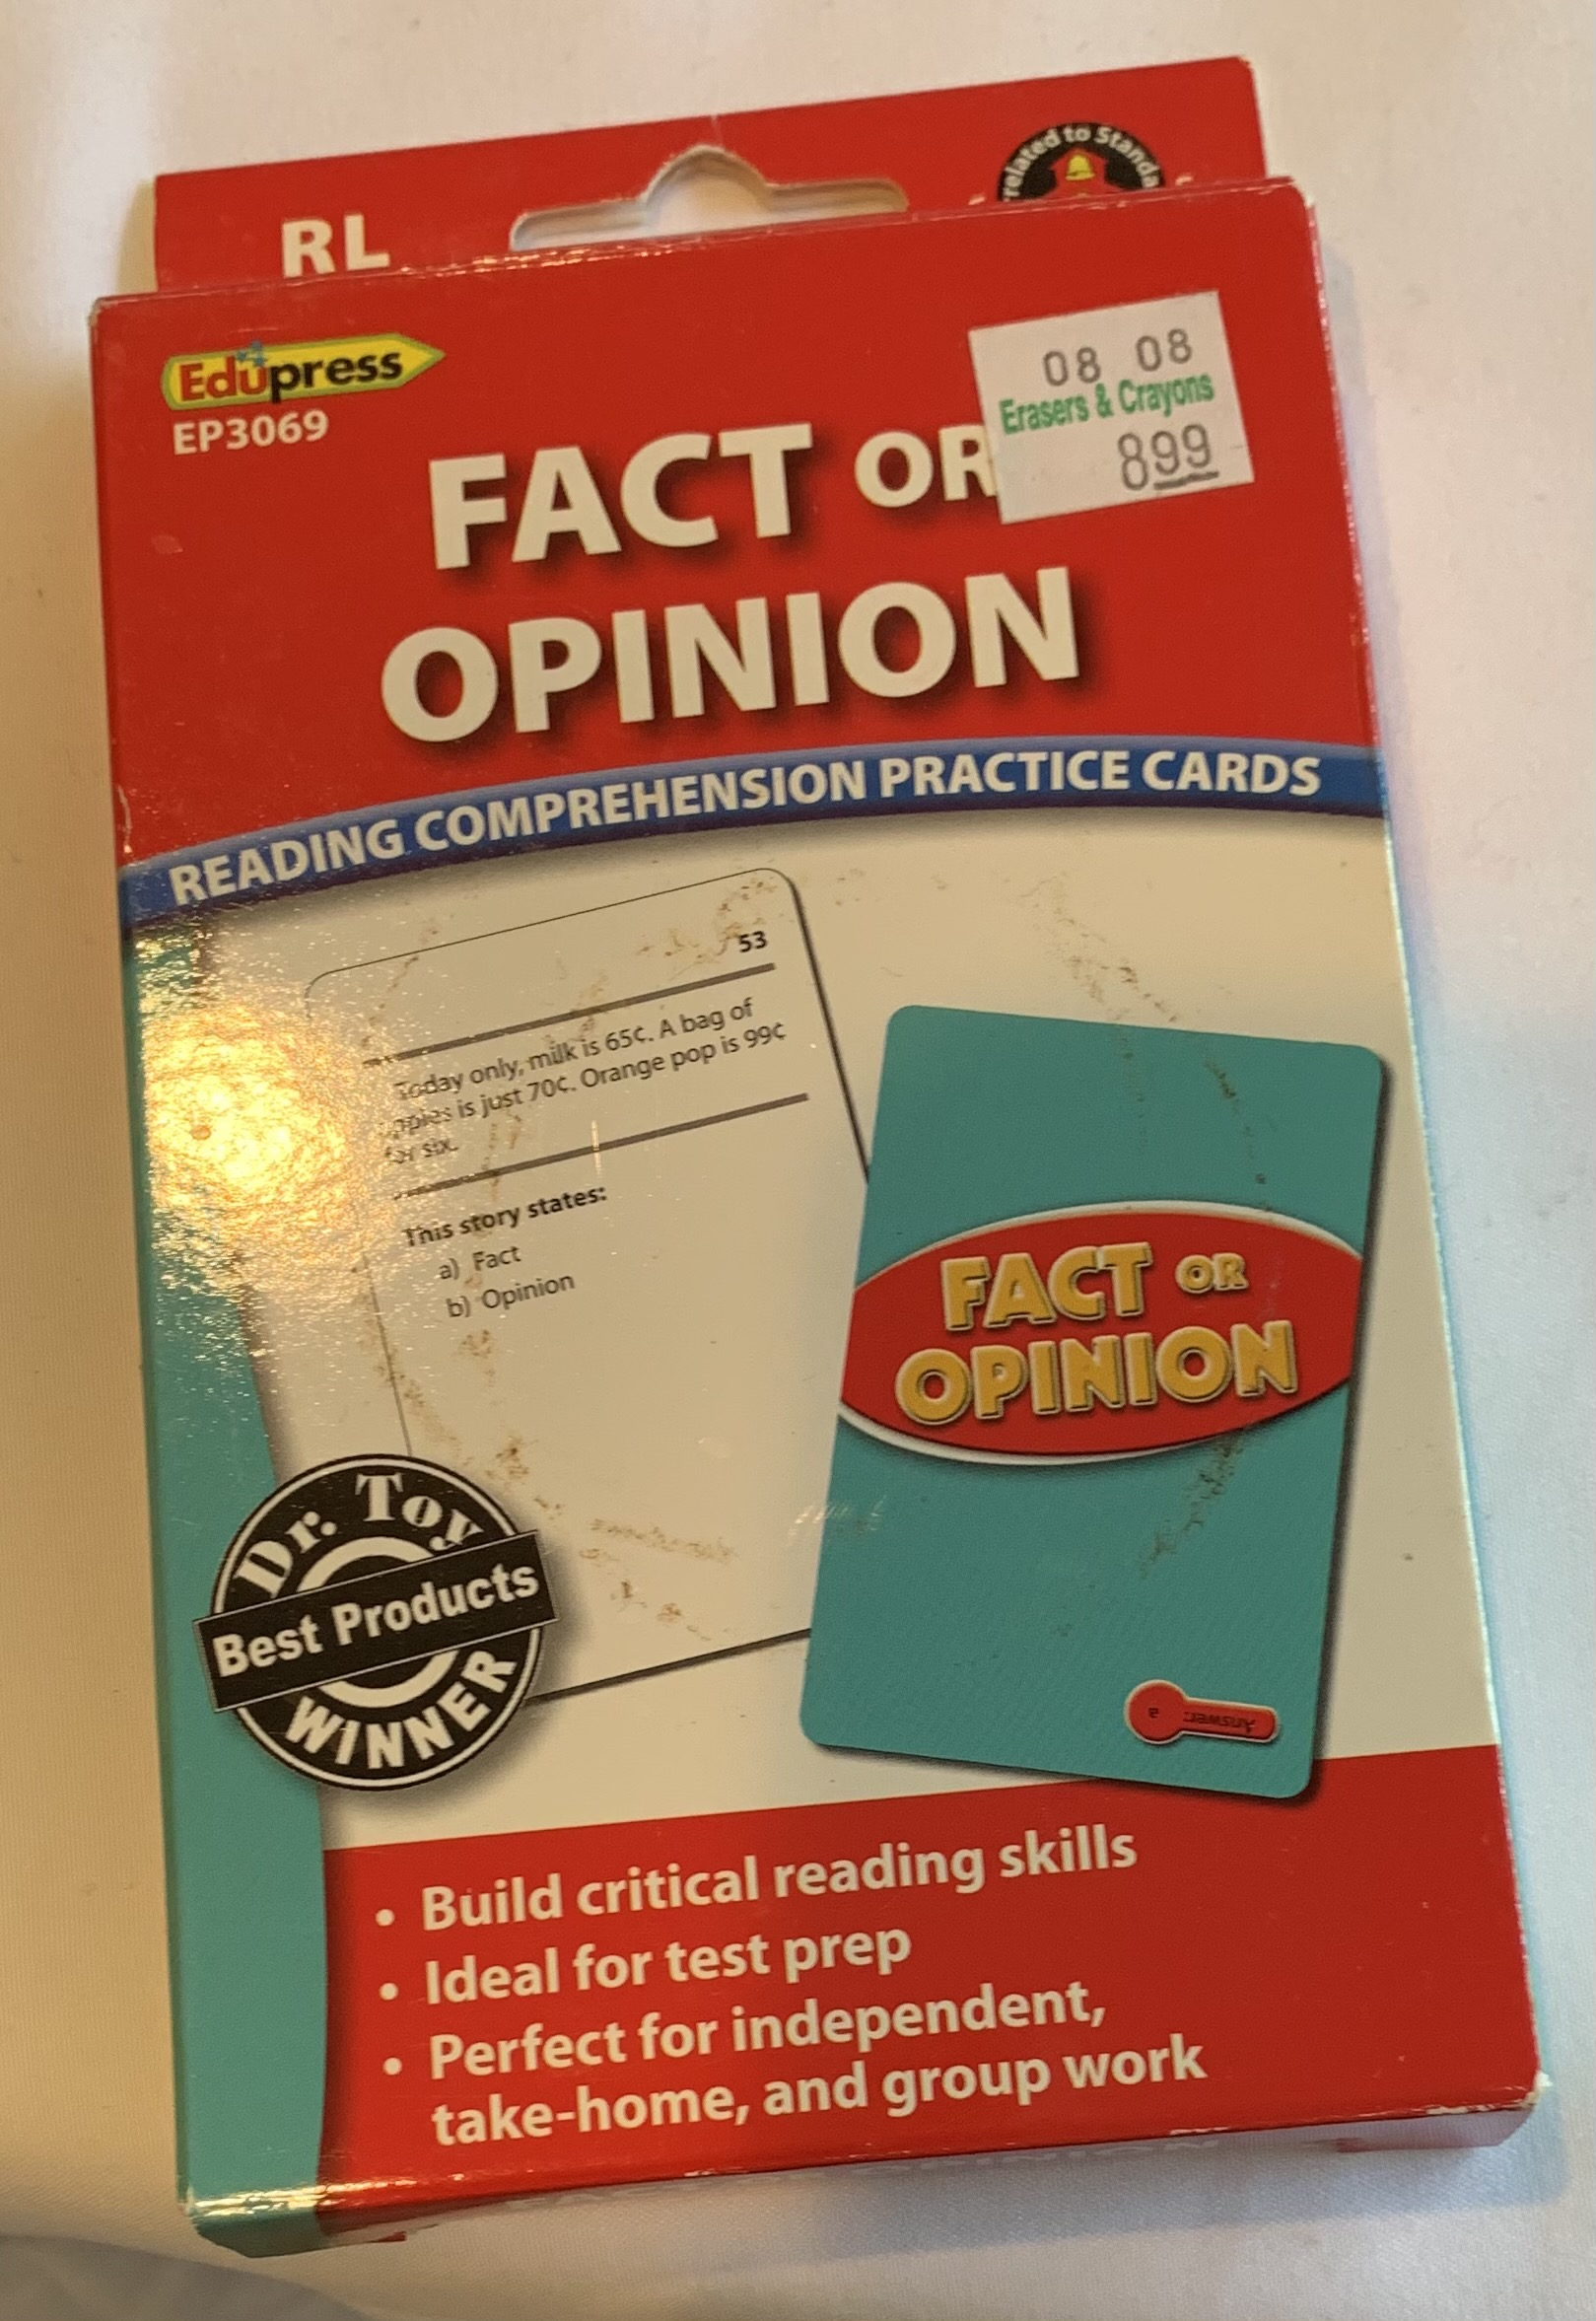 Reading Comprehension Cards - Fact or Opinion